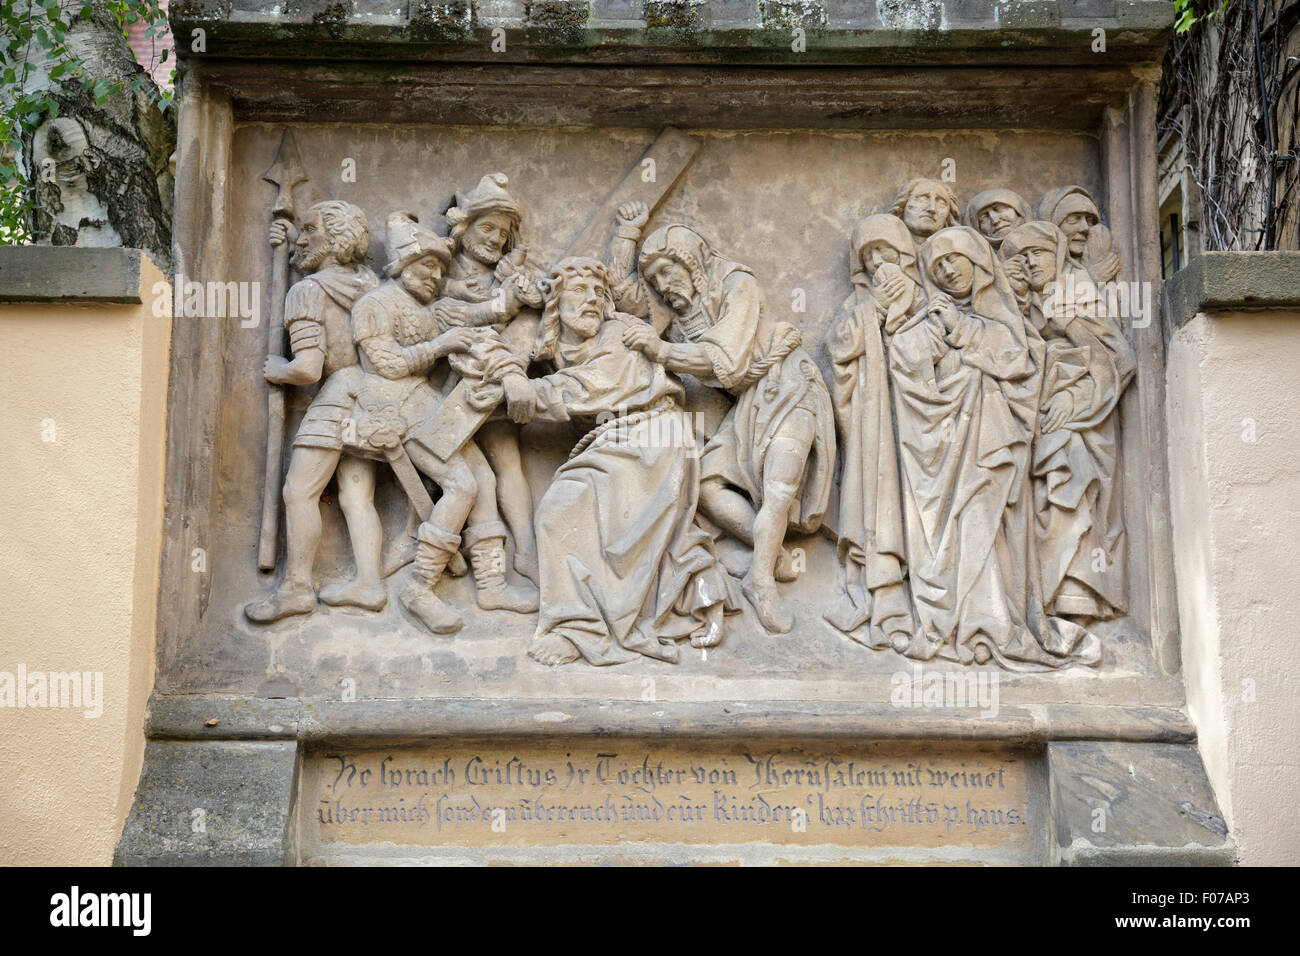 Stations of the Cross, from 1503, Jesus meets the women of Jerusalem, Bamberg, Bavaria, Germany - Stock Image